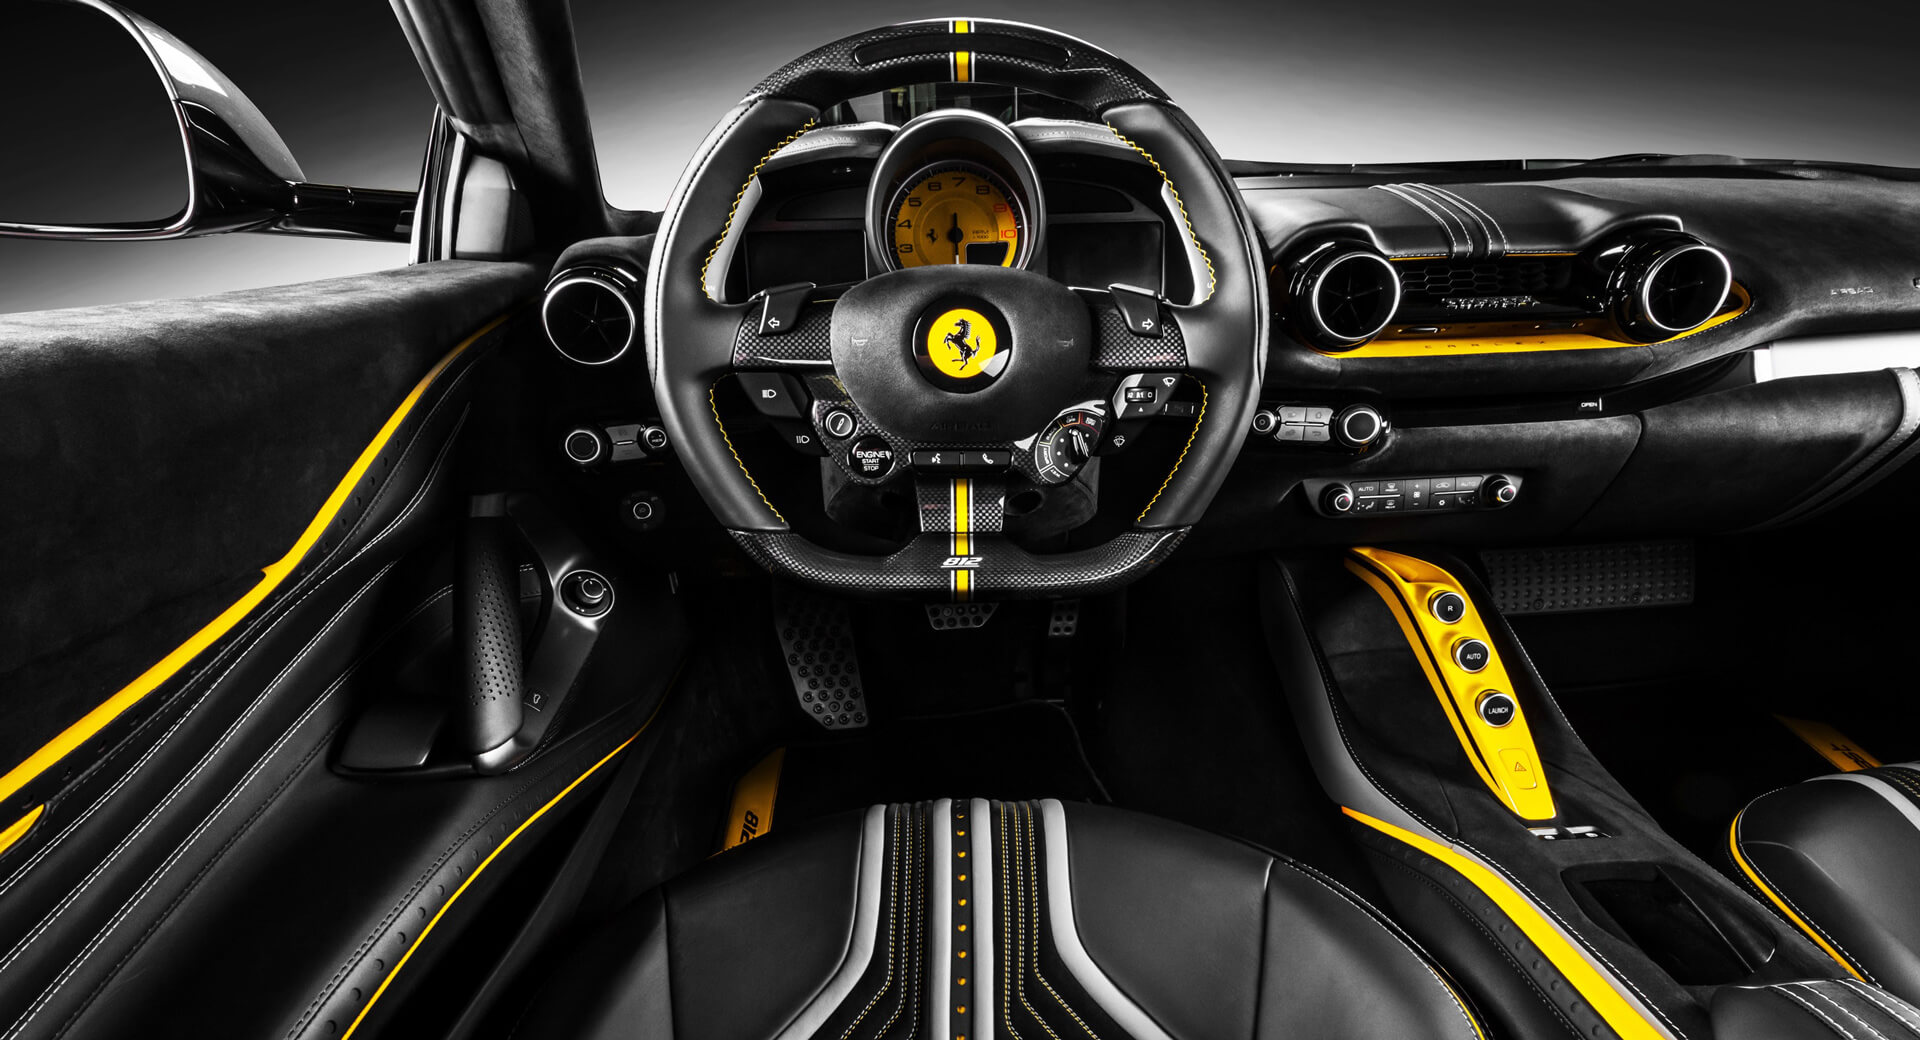 Polish car customizer Carlex Design has finished working on another major project, this time around coming up with a truly unique interior for the 800-HP Ferrari 812 Superfast.